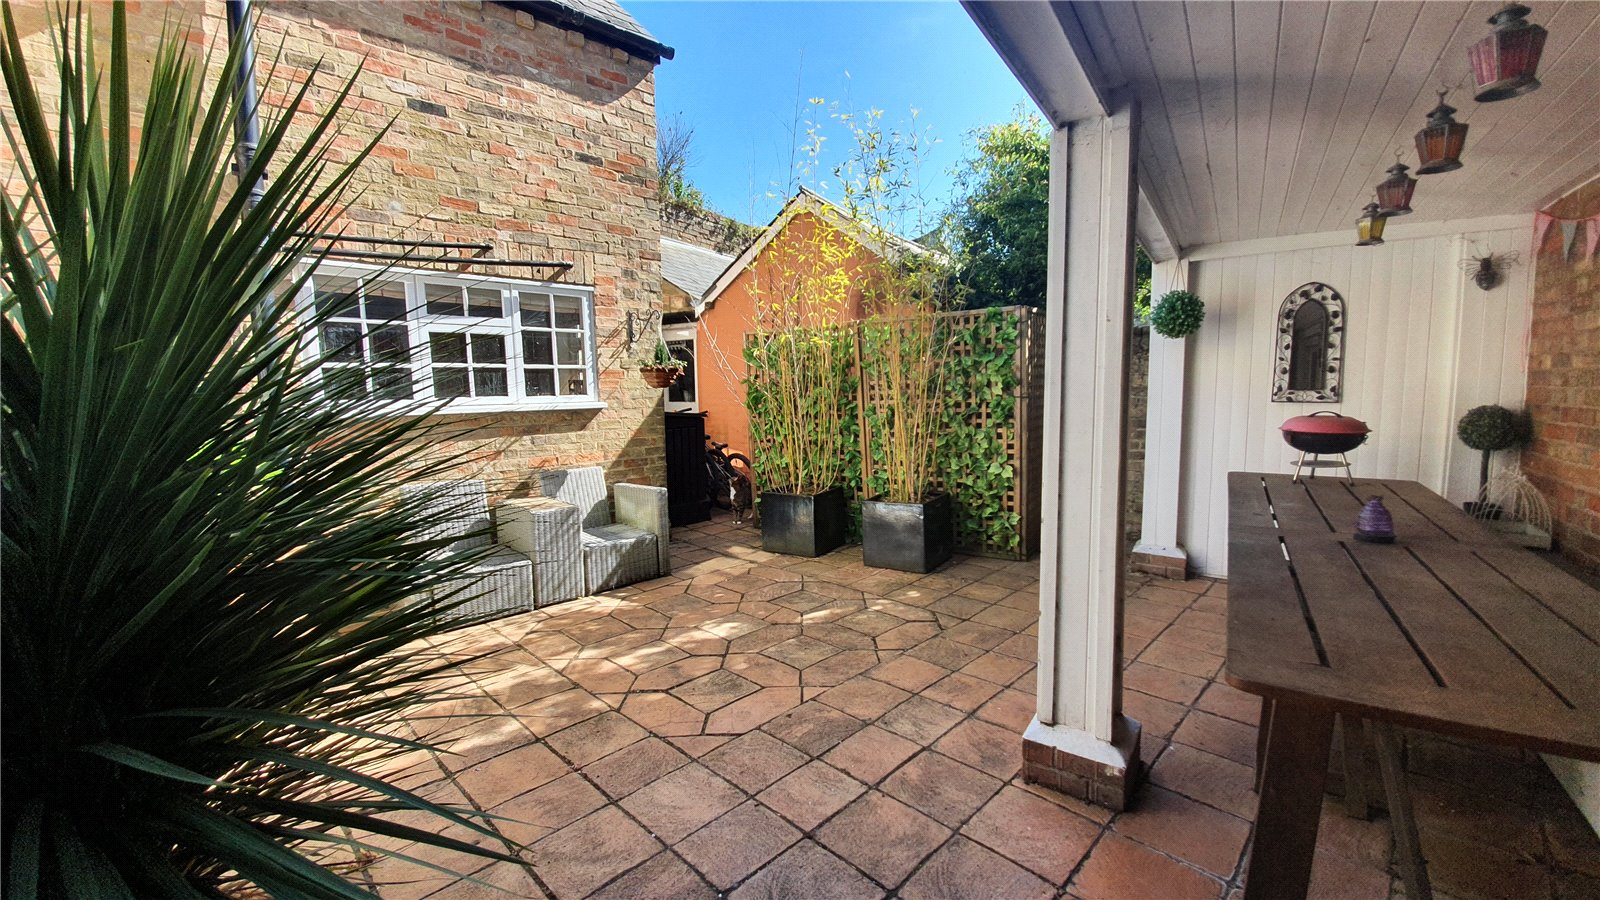 4 bed for sale in The Town, Great Staughton 3